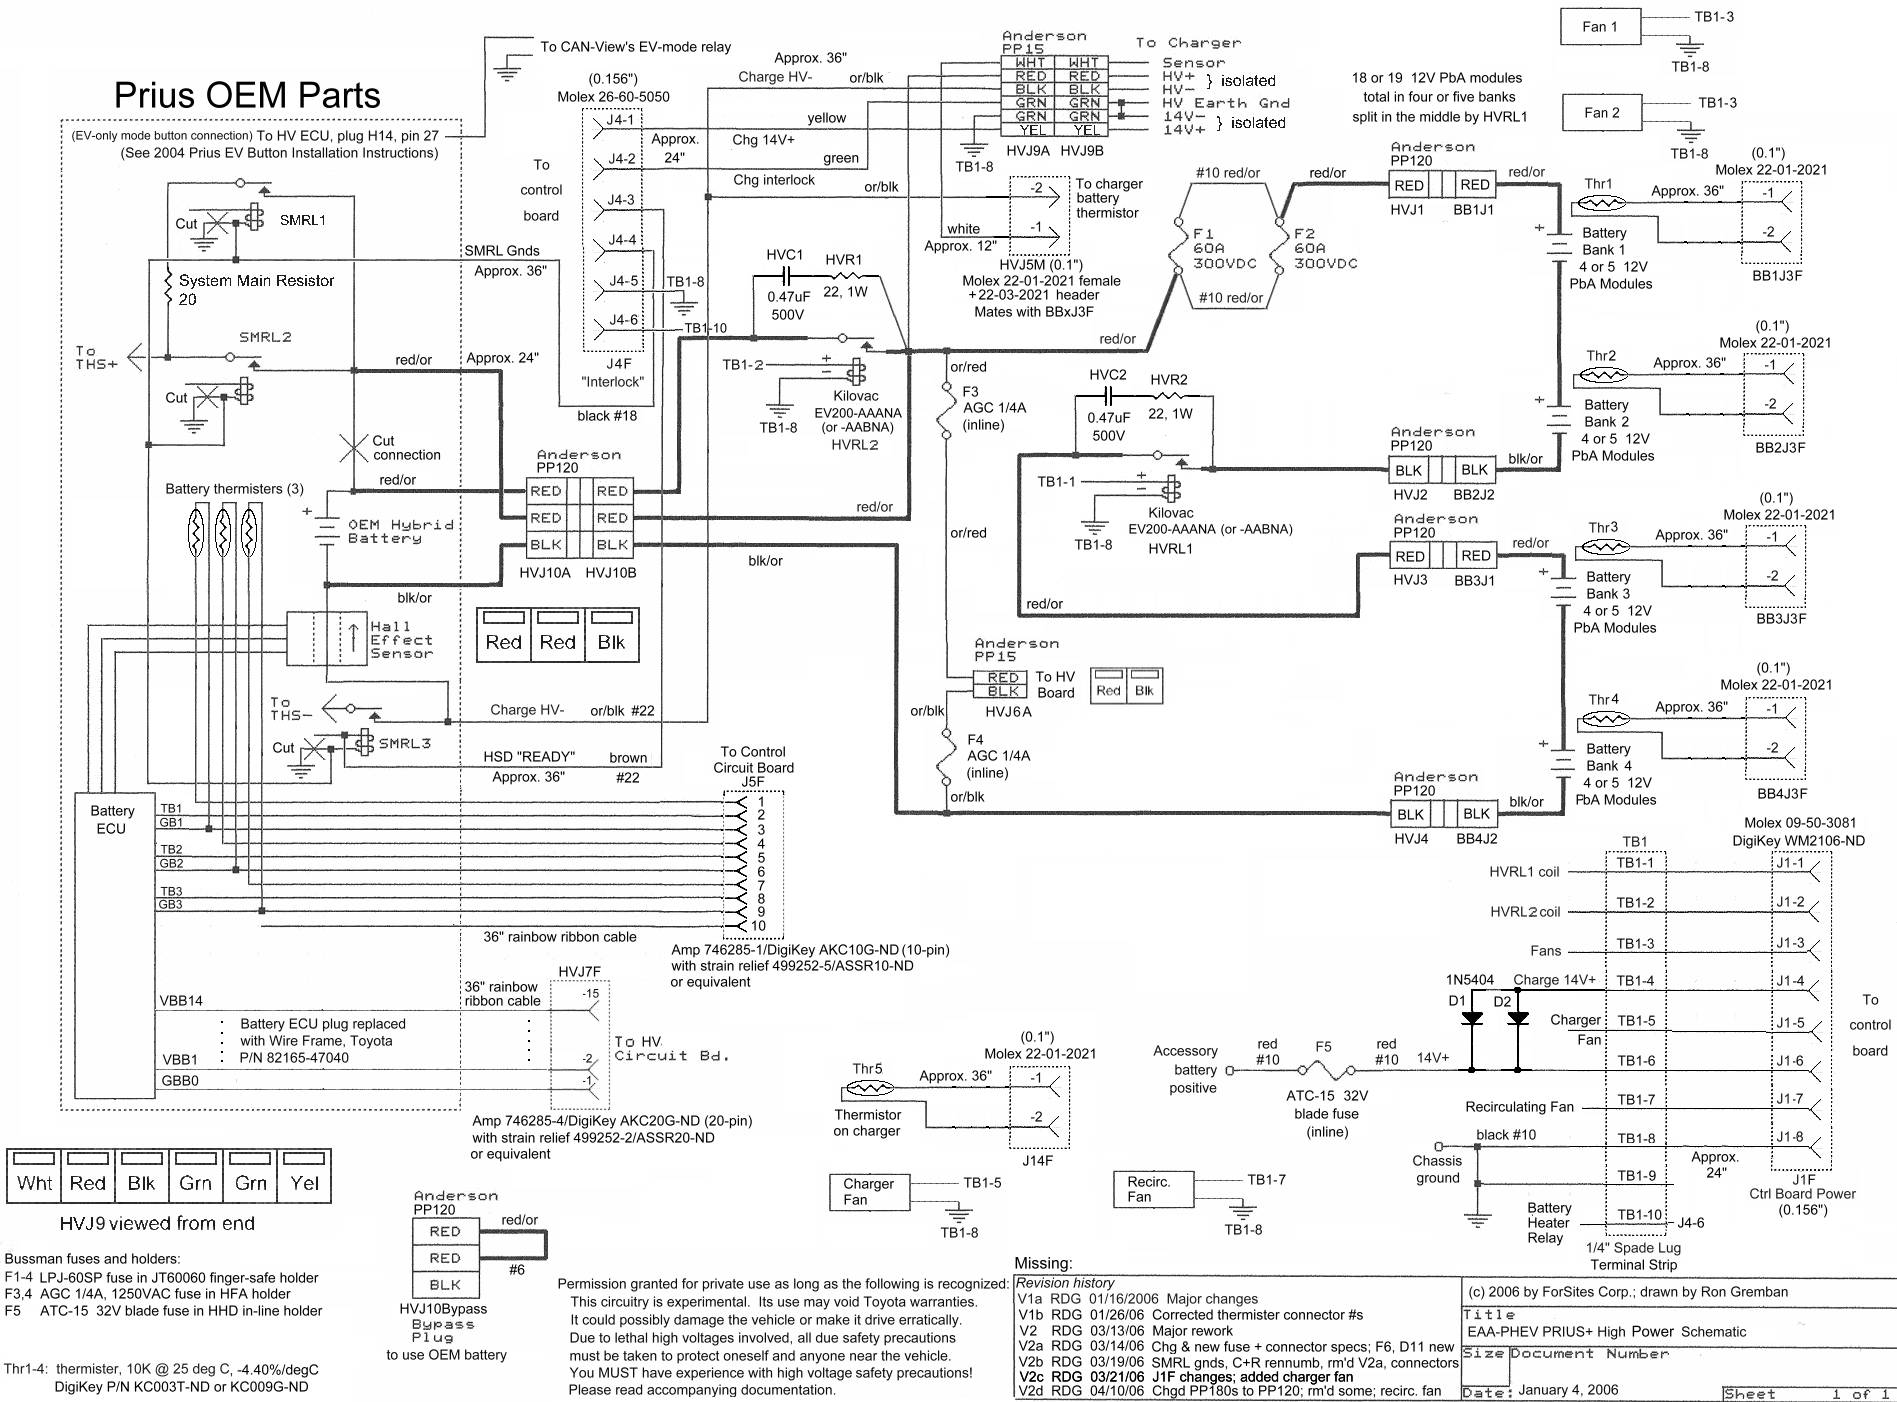 Toyota Prius Wiring Diagram from static-resources.imageservice.cloud